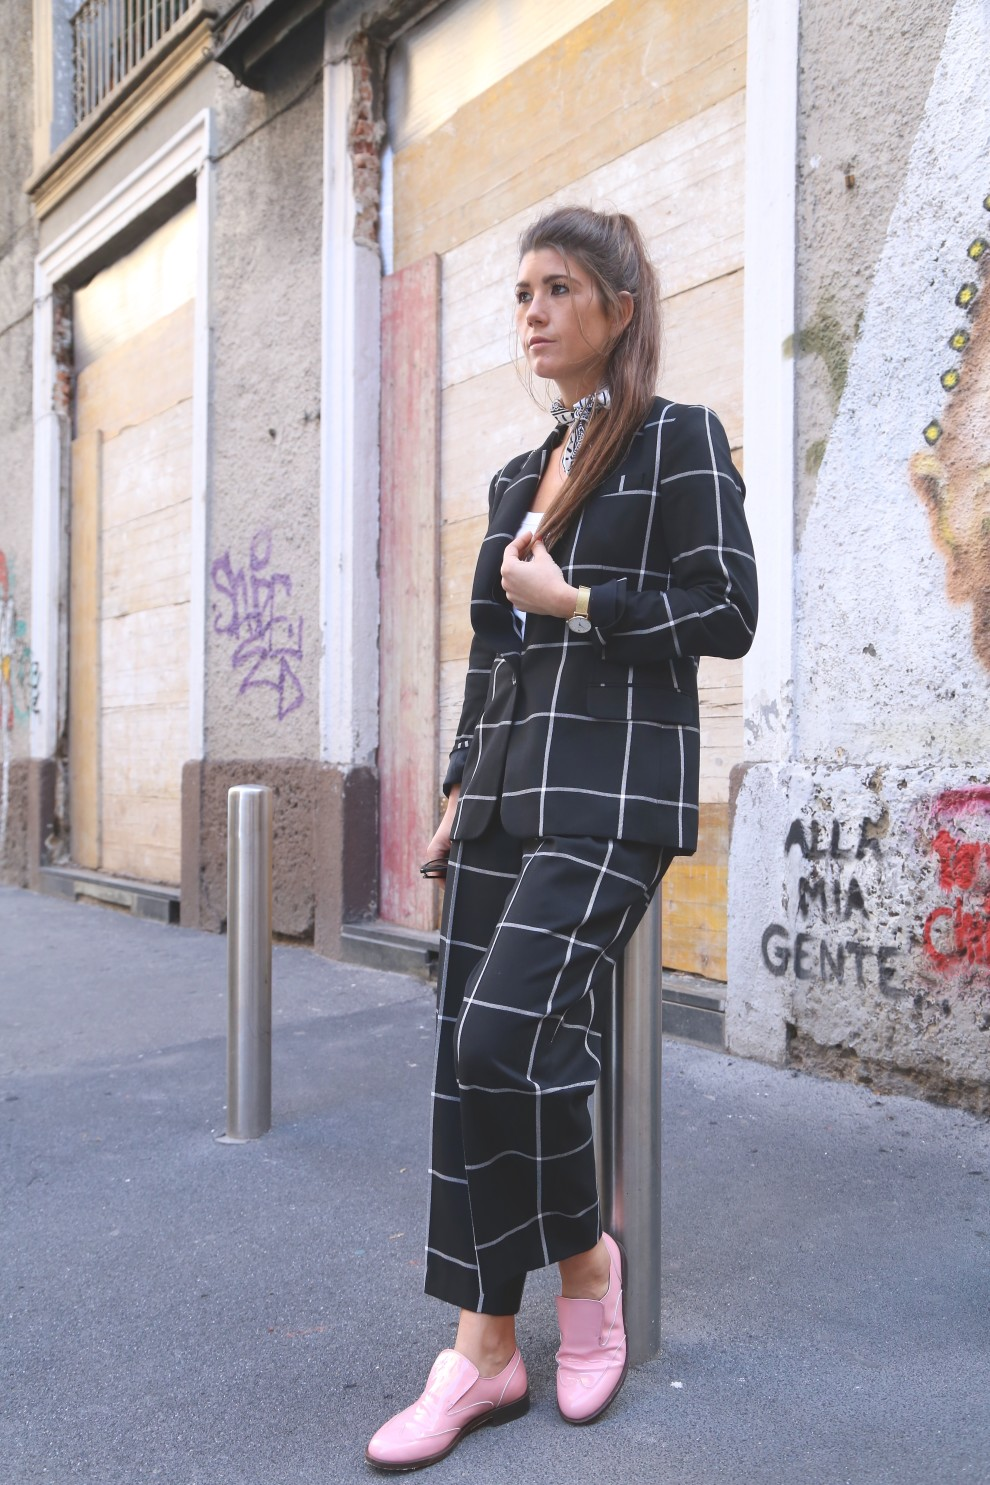 SIS BY SPIJKERS & SPIJKERS IN MILAN FASHION WEEK COSTUME NATIONAL SHOW LF SHOES BLOGGER ITALY